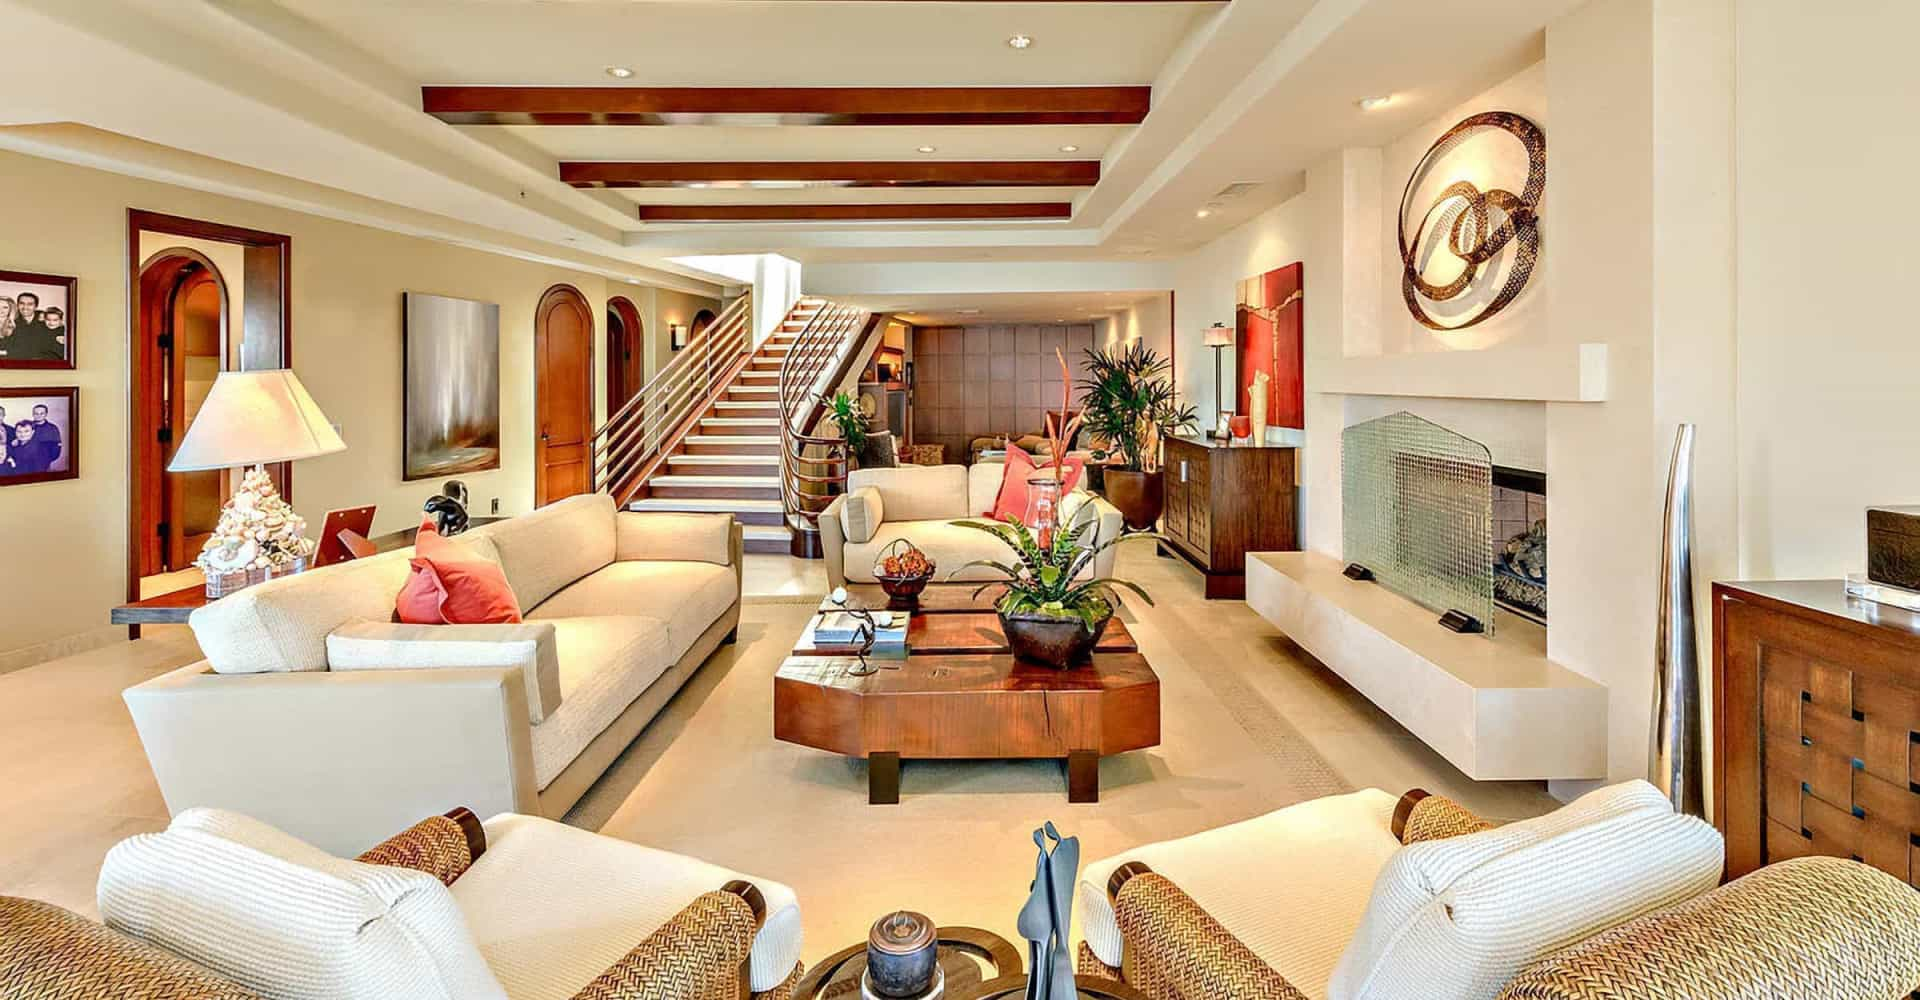 Take a peek inside these celebrity living rooms